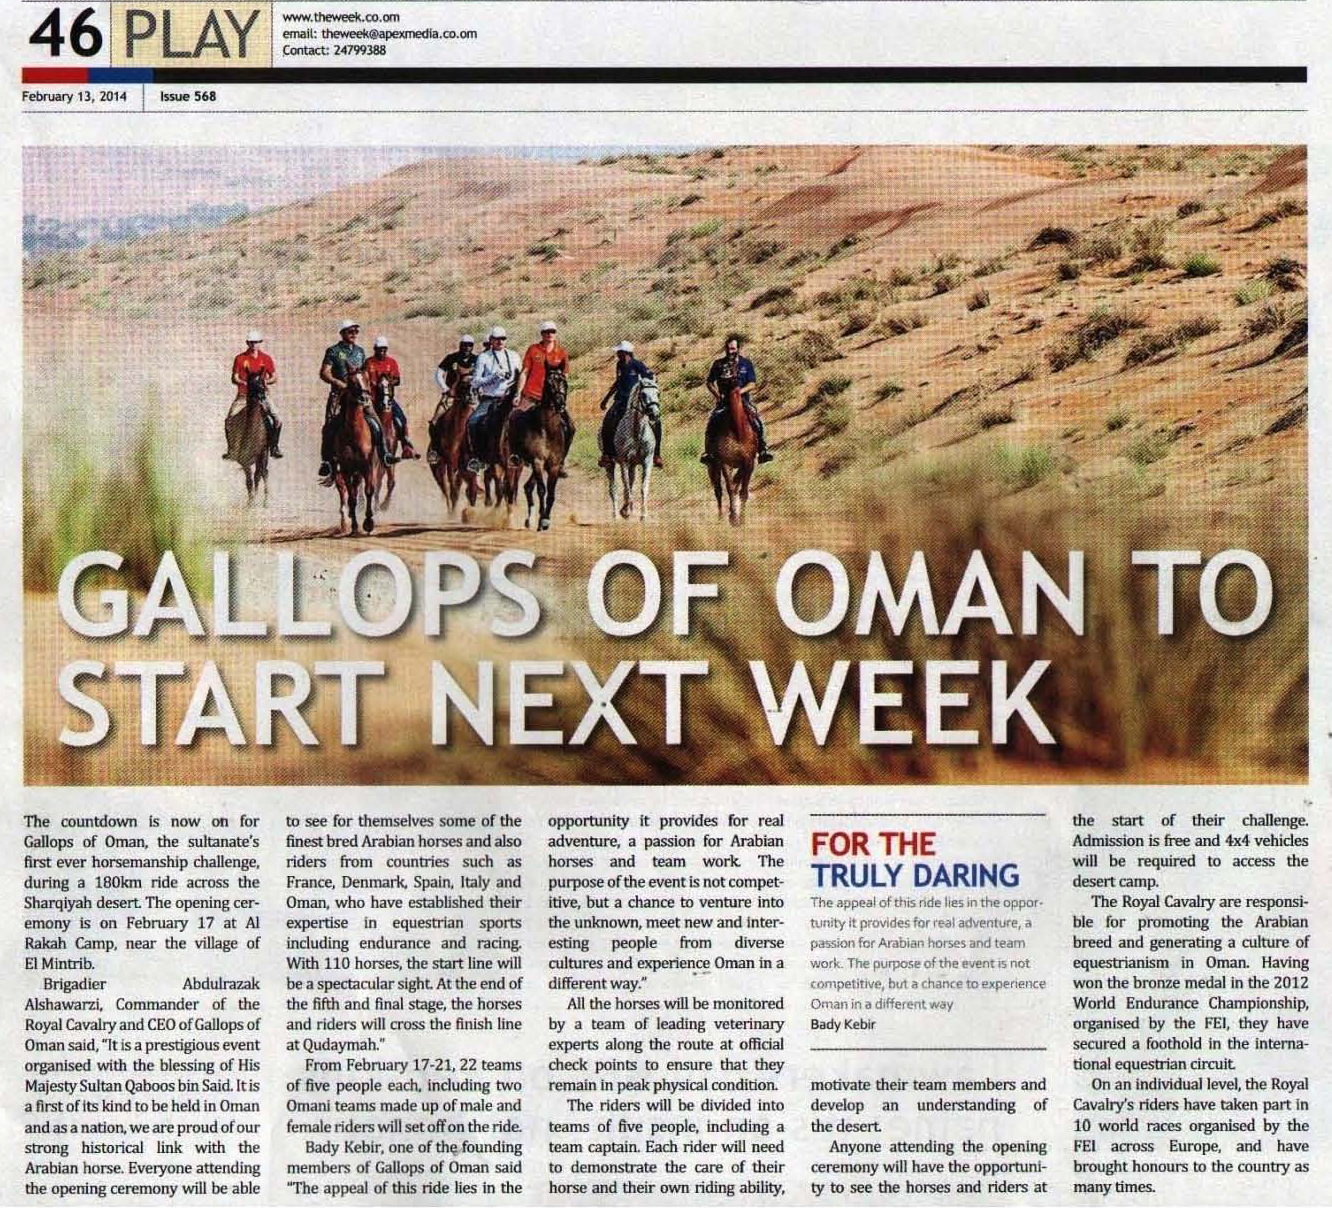 The Week (Sultane of Oman)